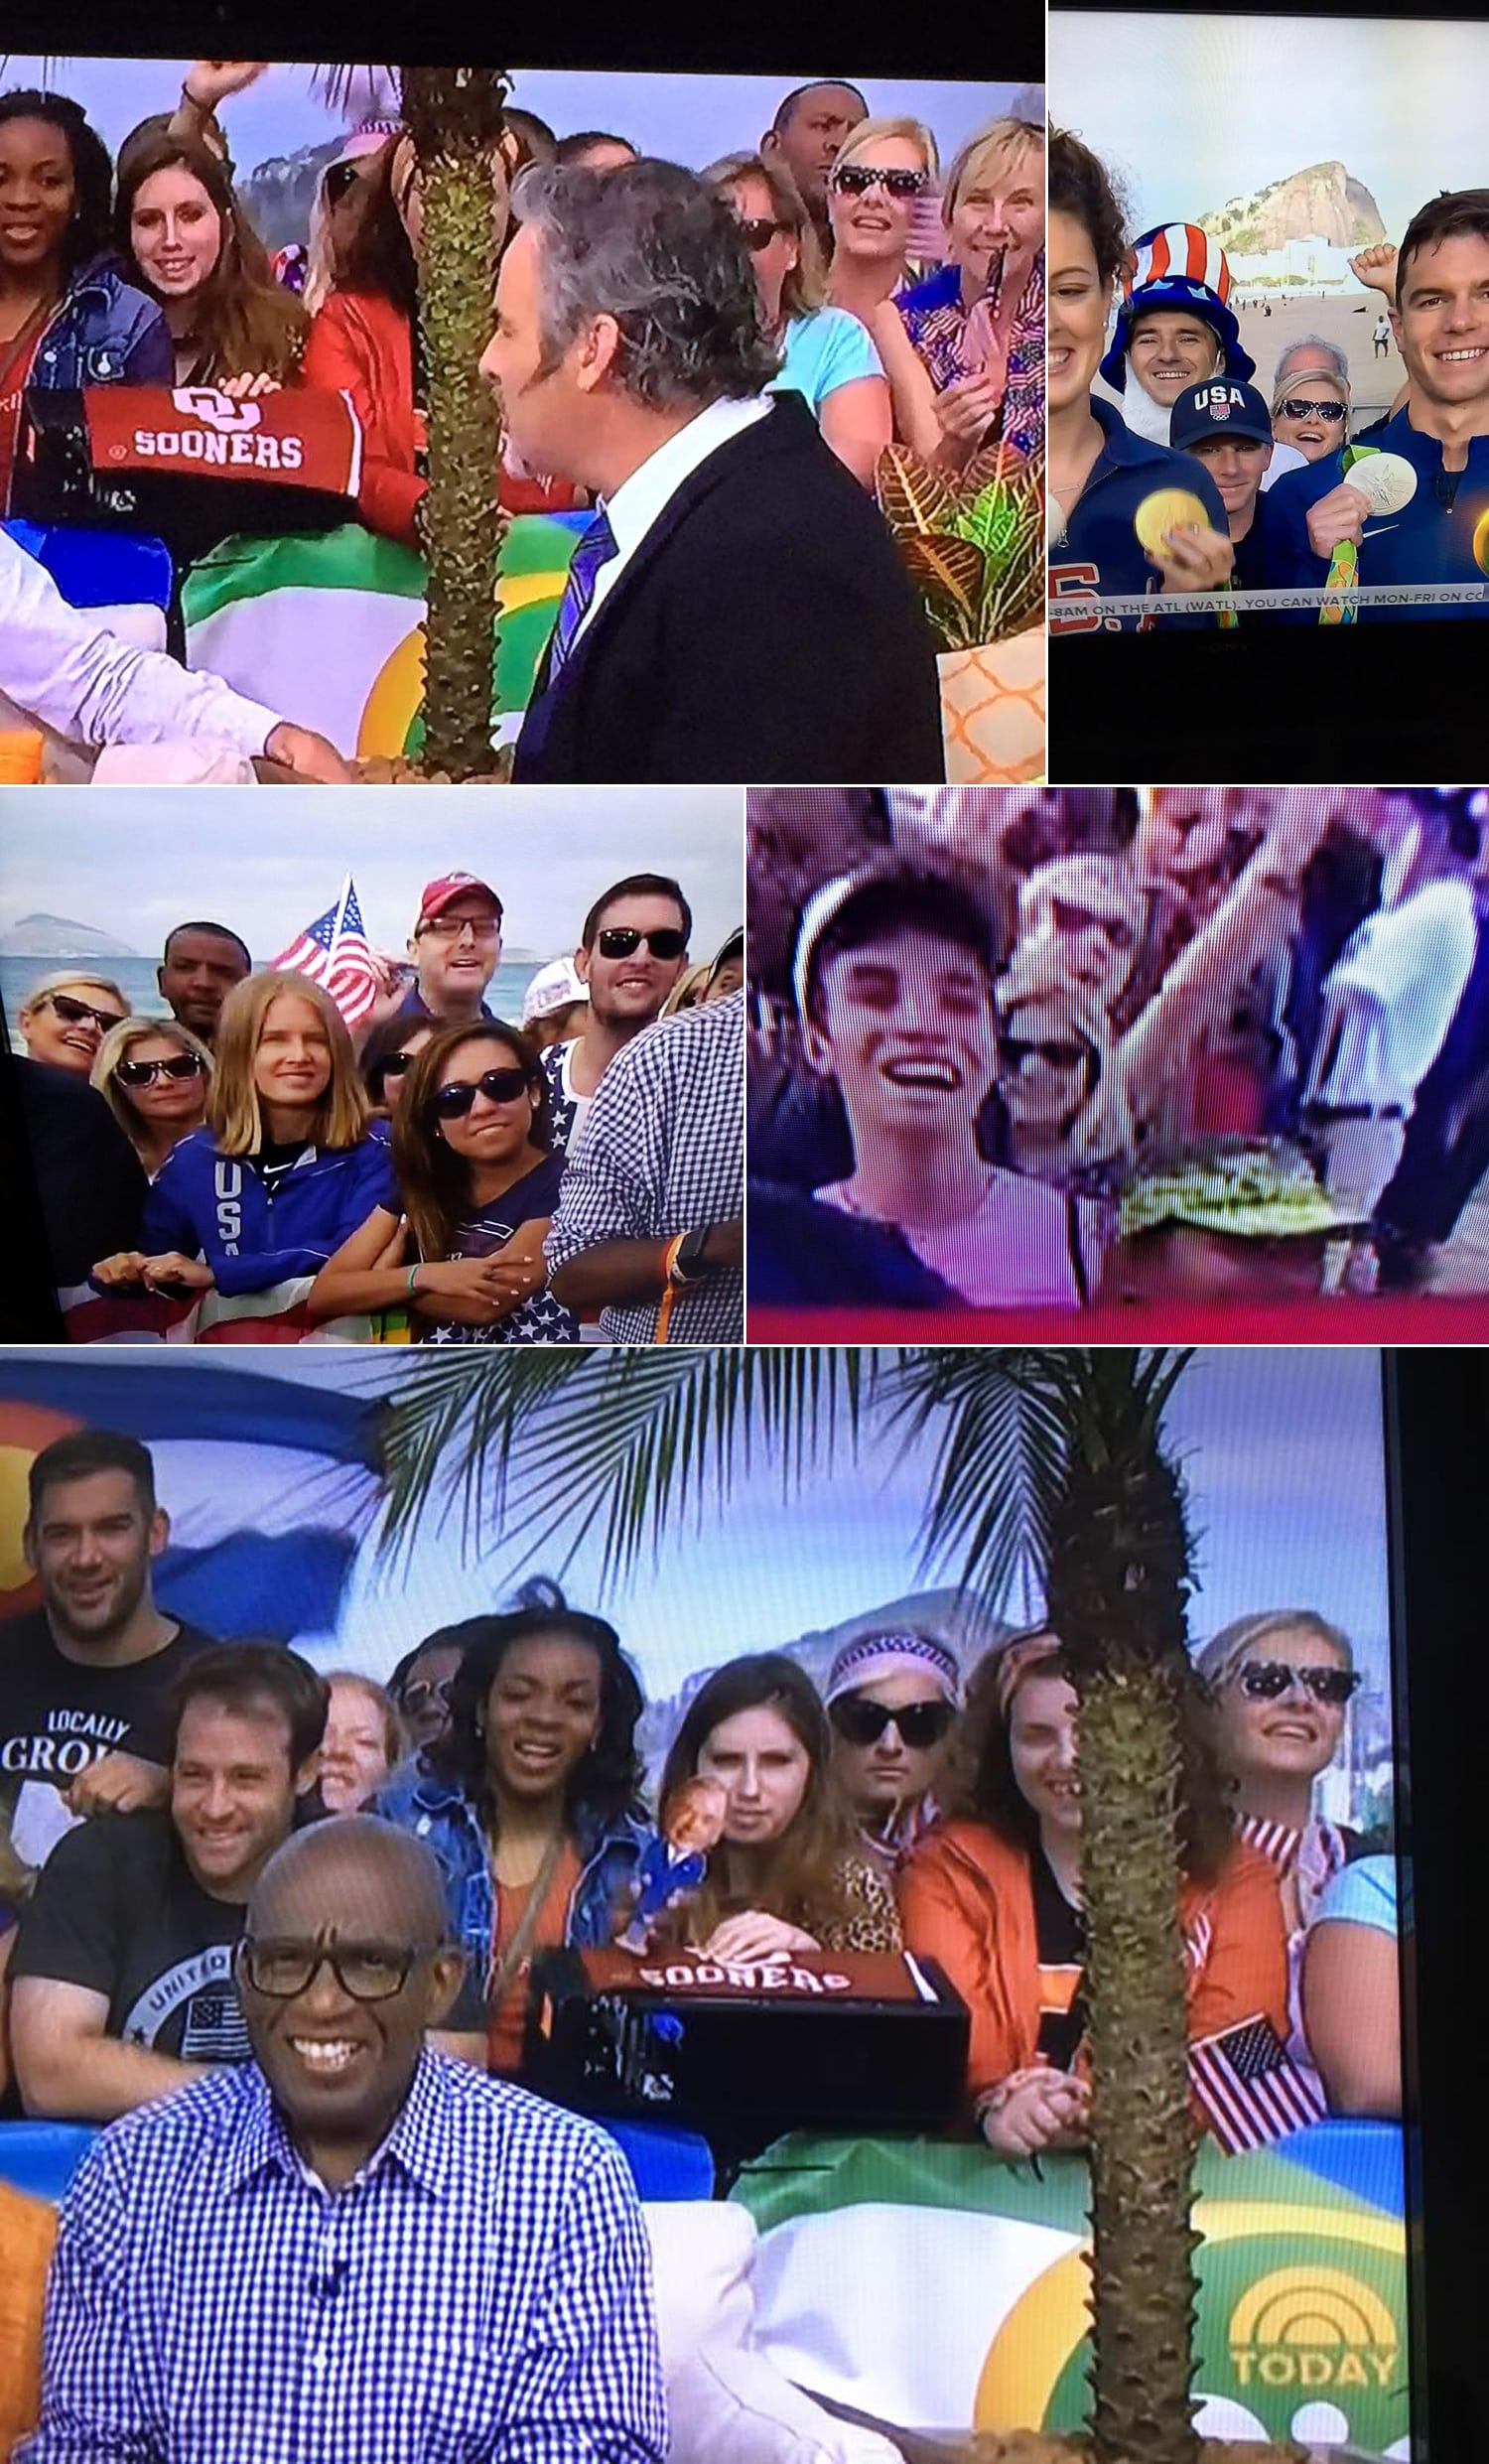 Our 15 minutes of fame in Rio